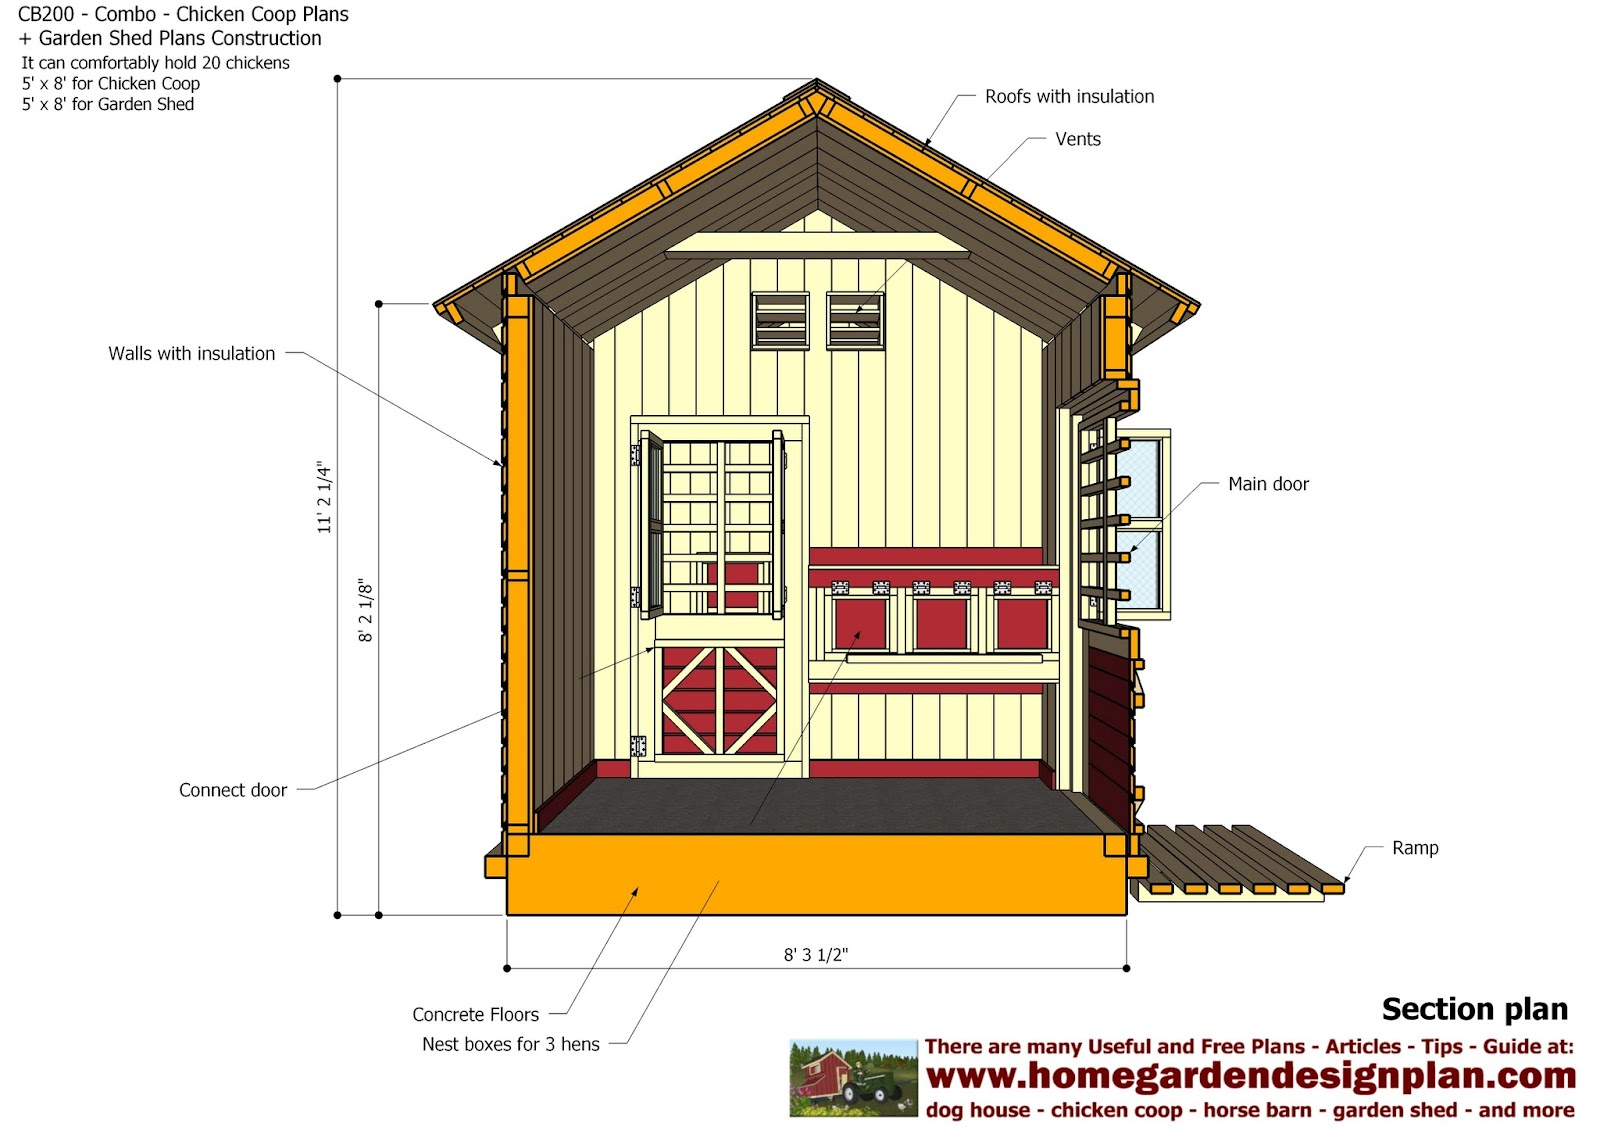 For chick coop cb200 combo plans chicken coop plans for Garden shed designs 5